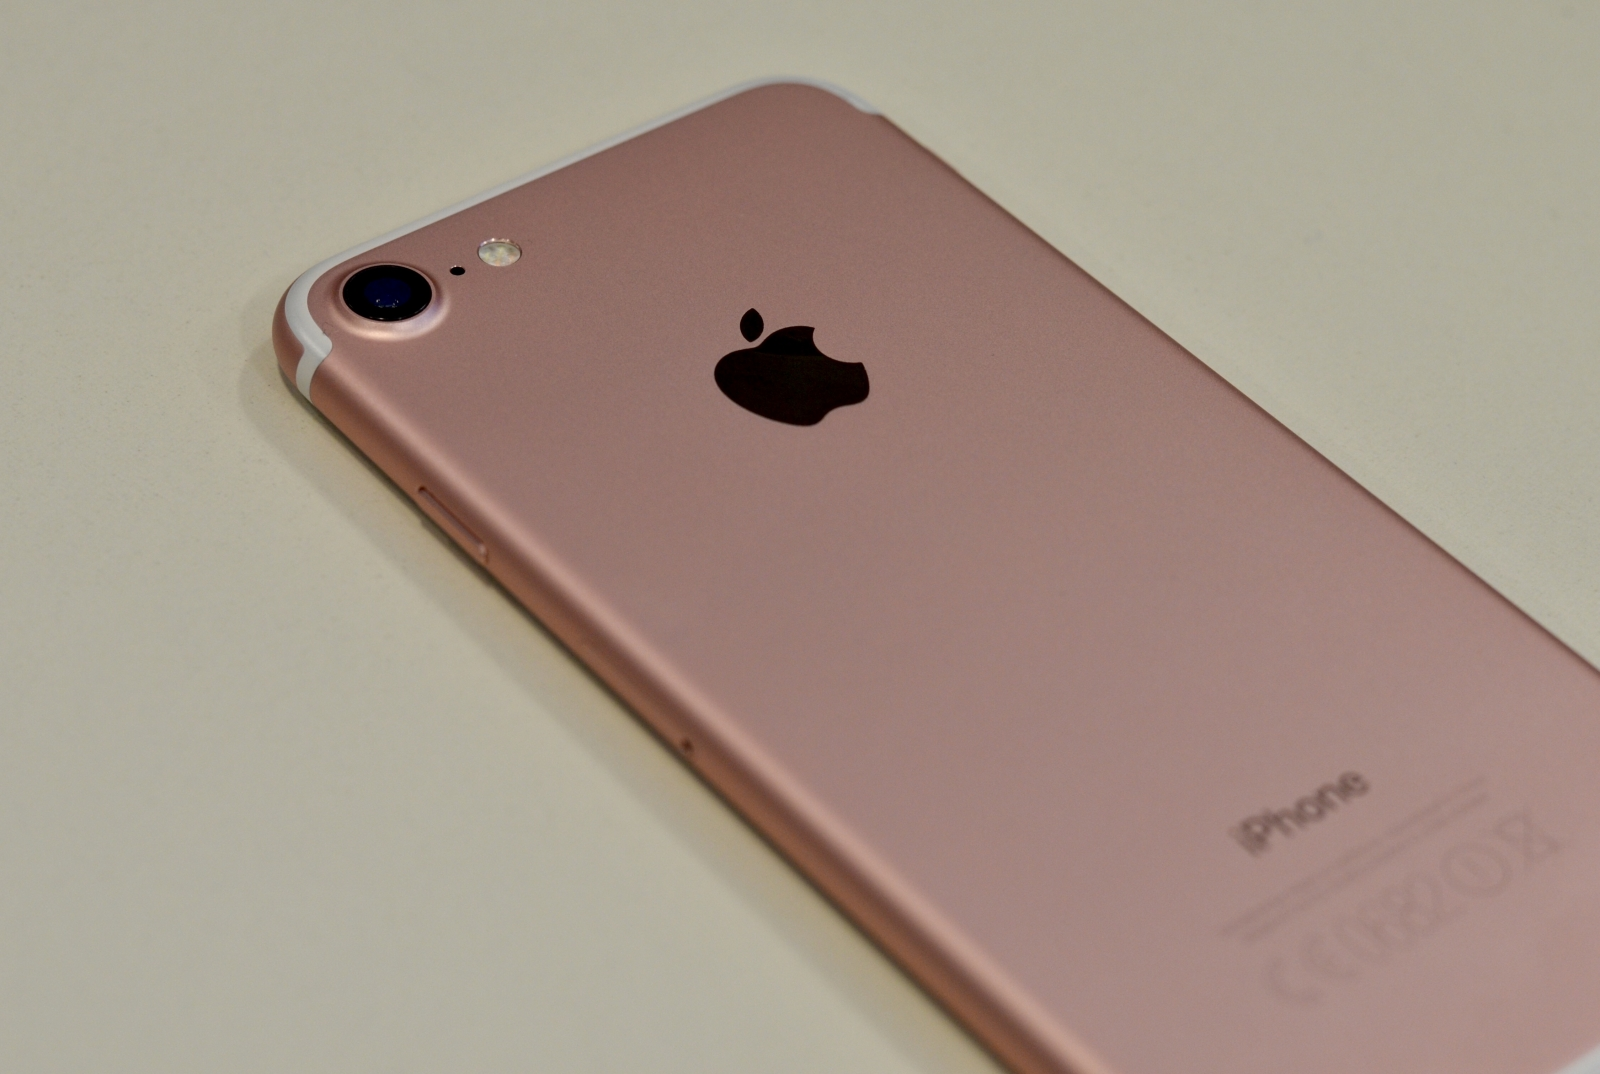 Apple iPhone 7 back rose gold